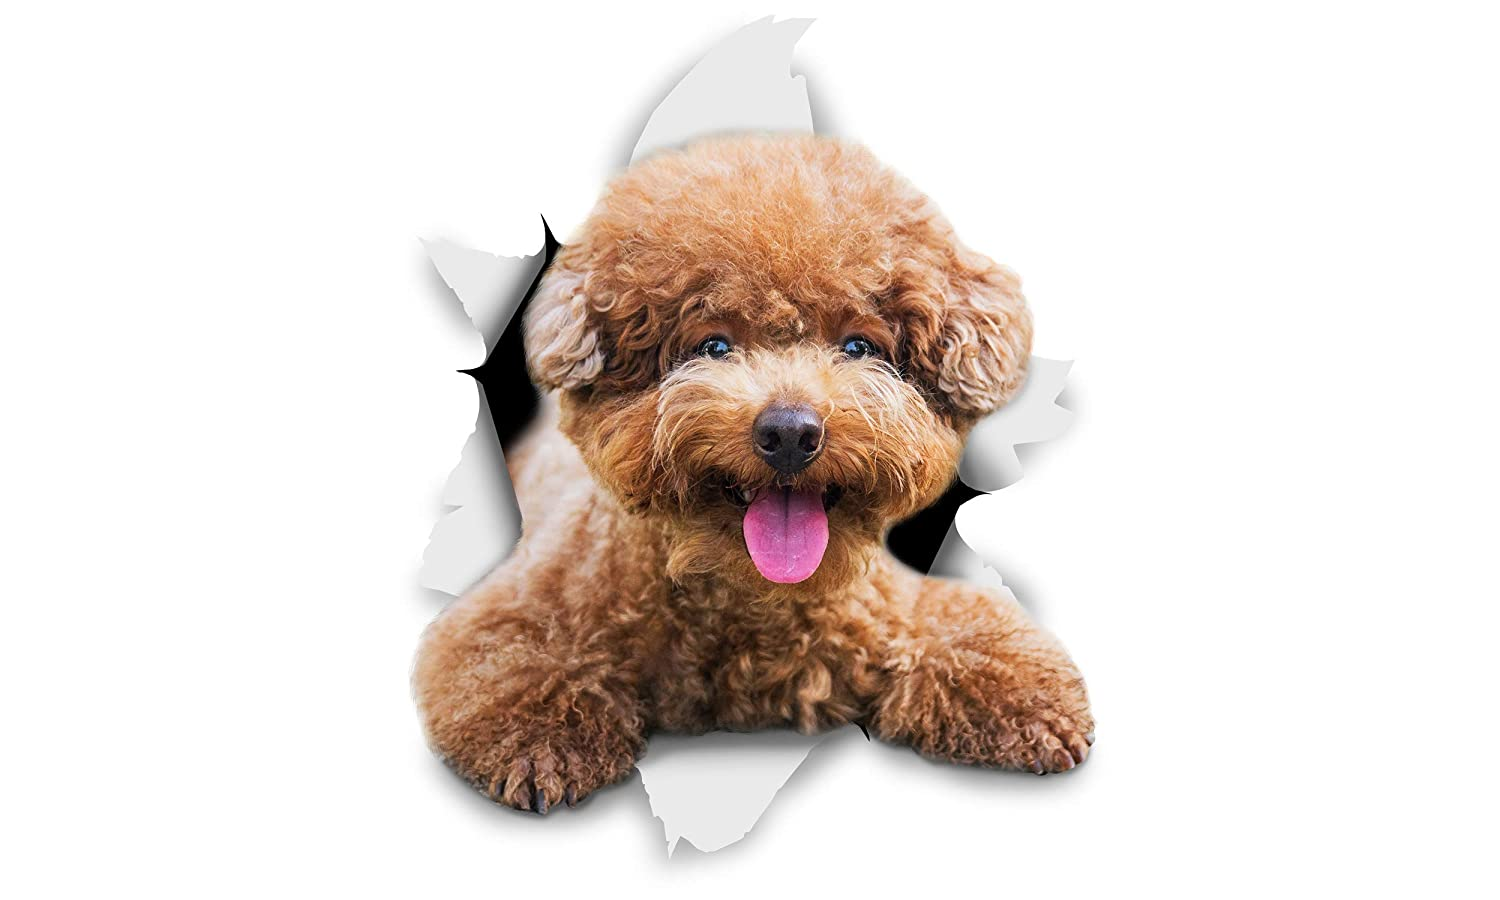 Winston /& Bear 3D Dog Stickers Smiling Brown Poodle for Wall 2 Pack Toilet and More Fridge Retail Packaged Brown Poodle Dog Stickers